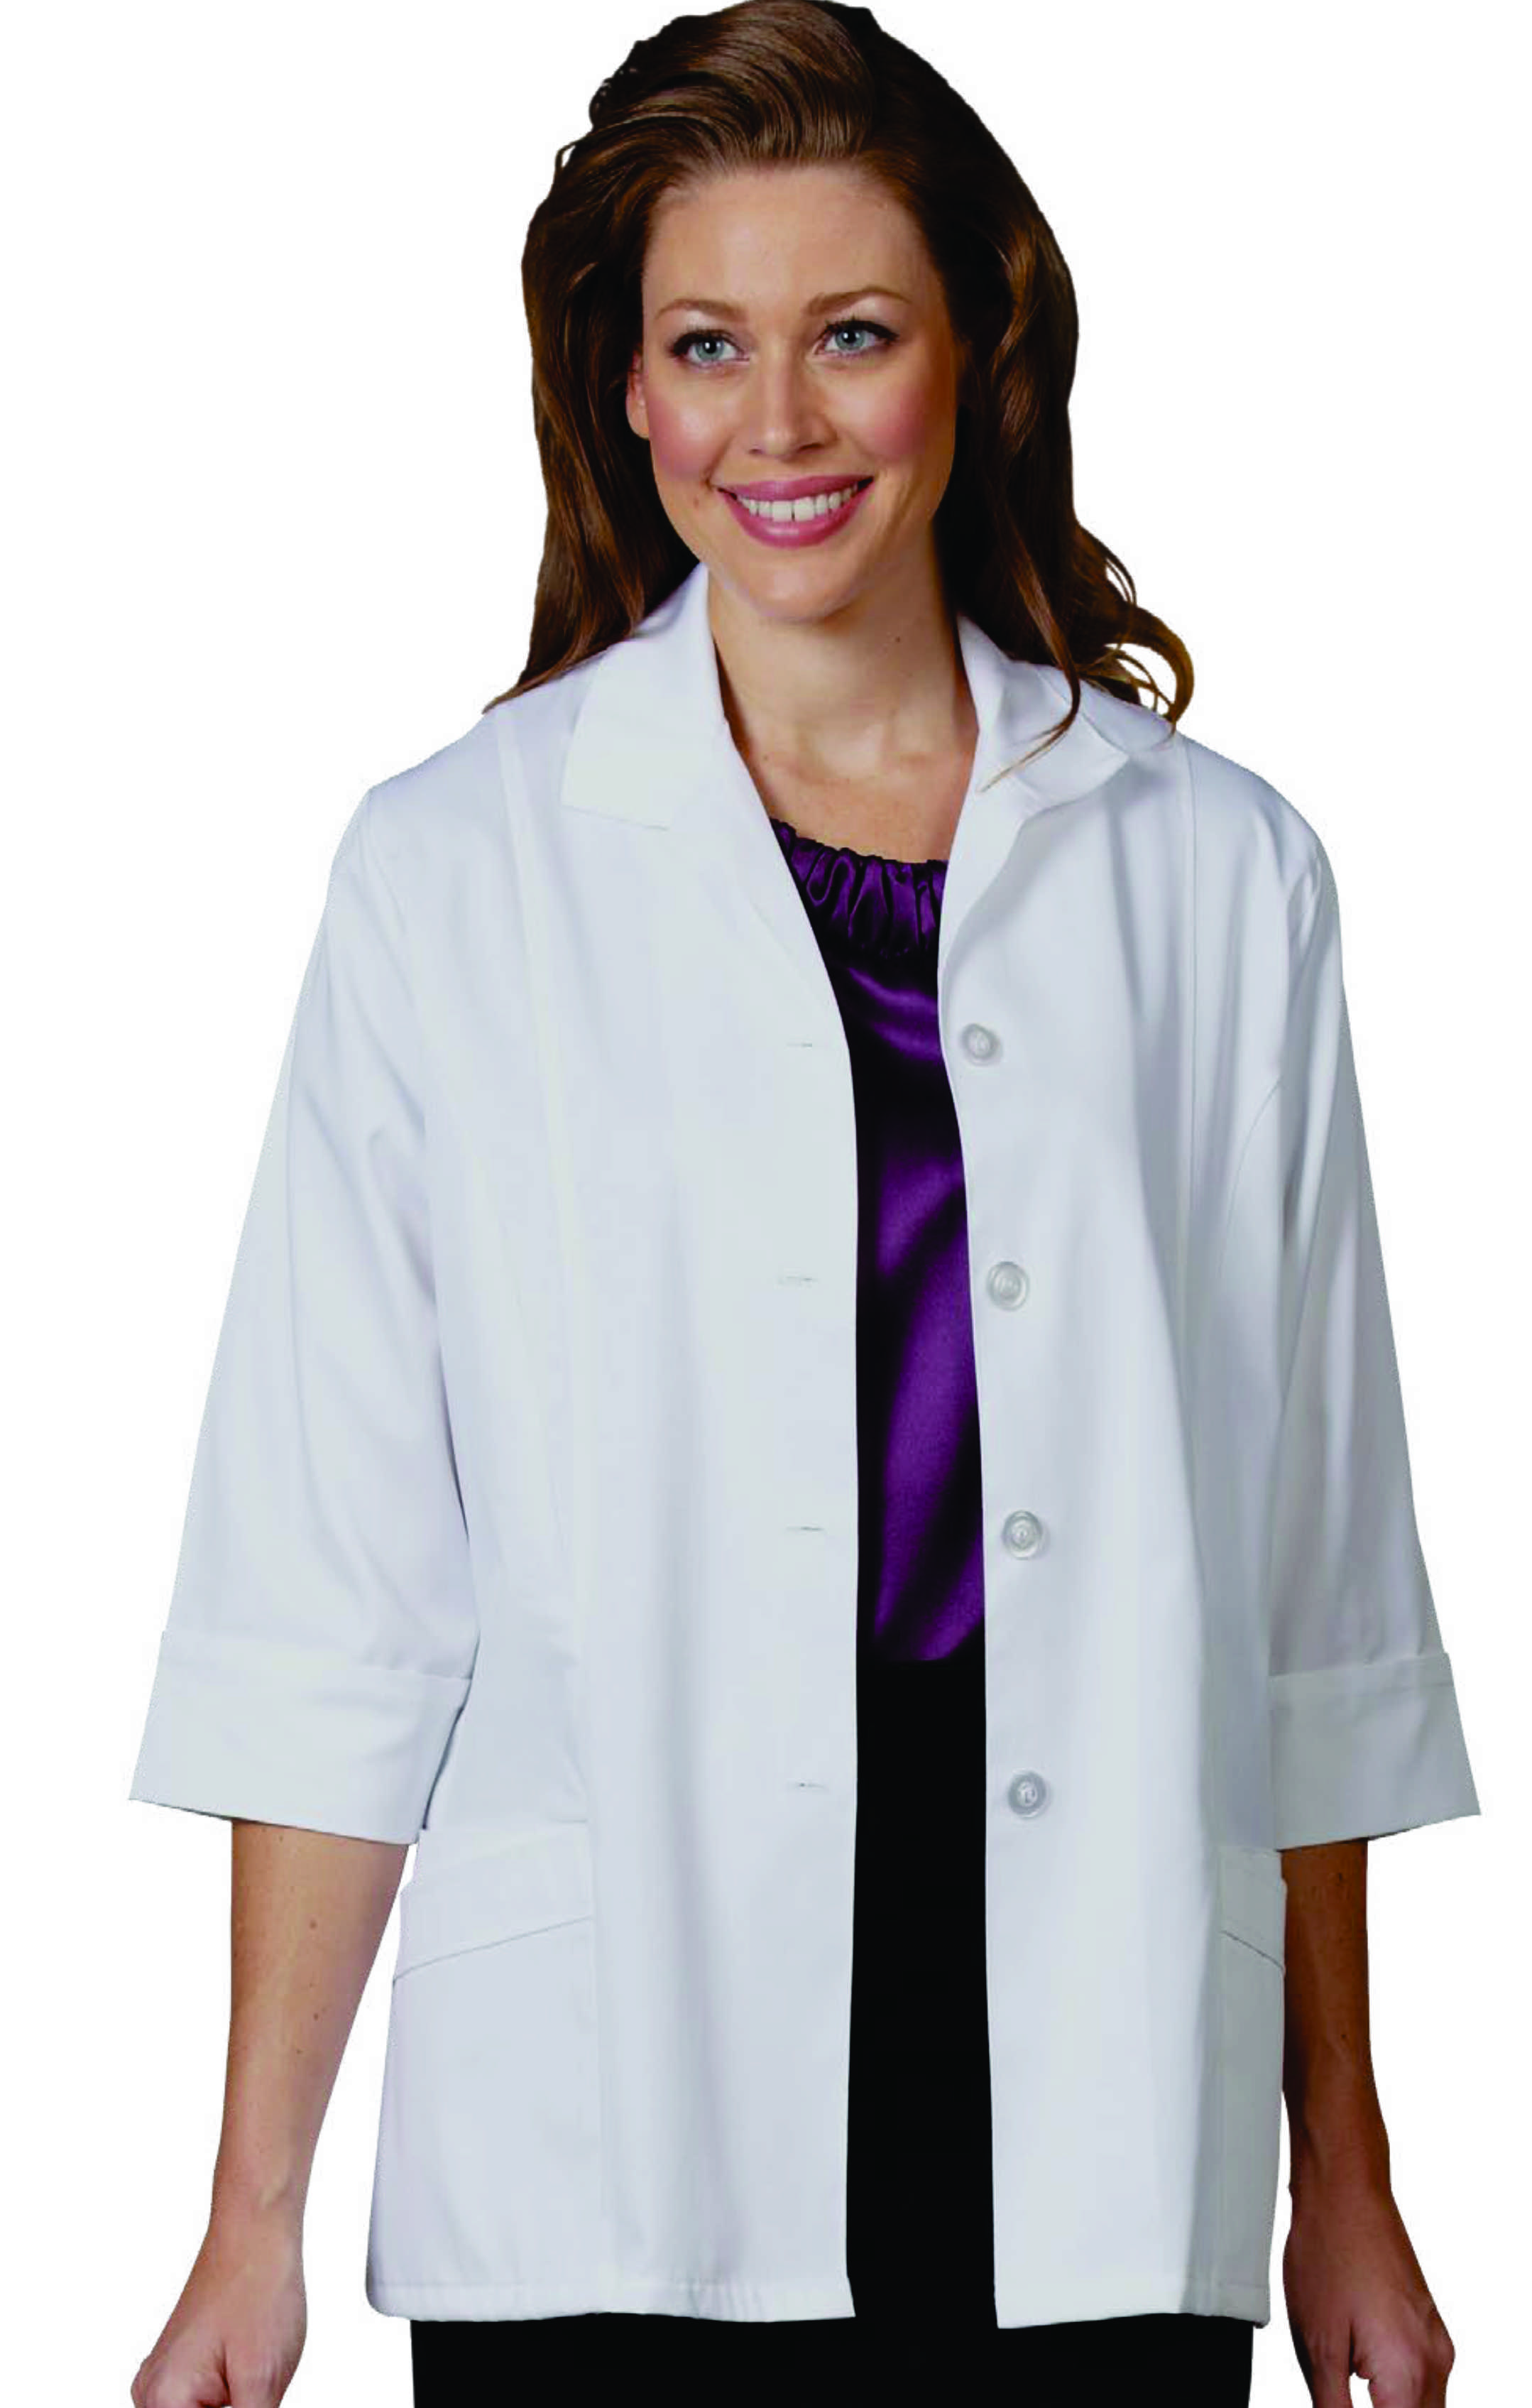 Womens Doctor Coat 05